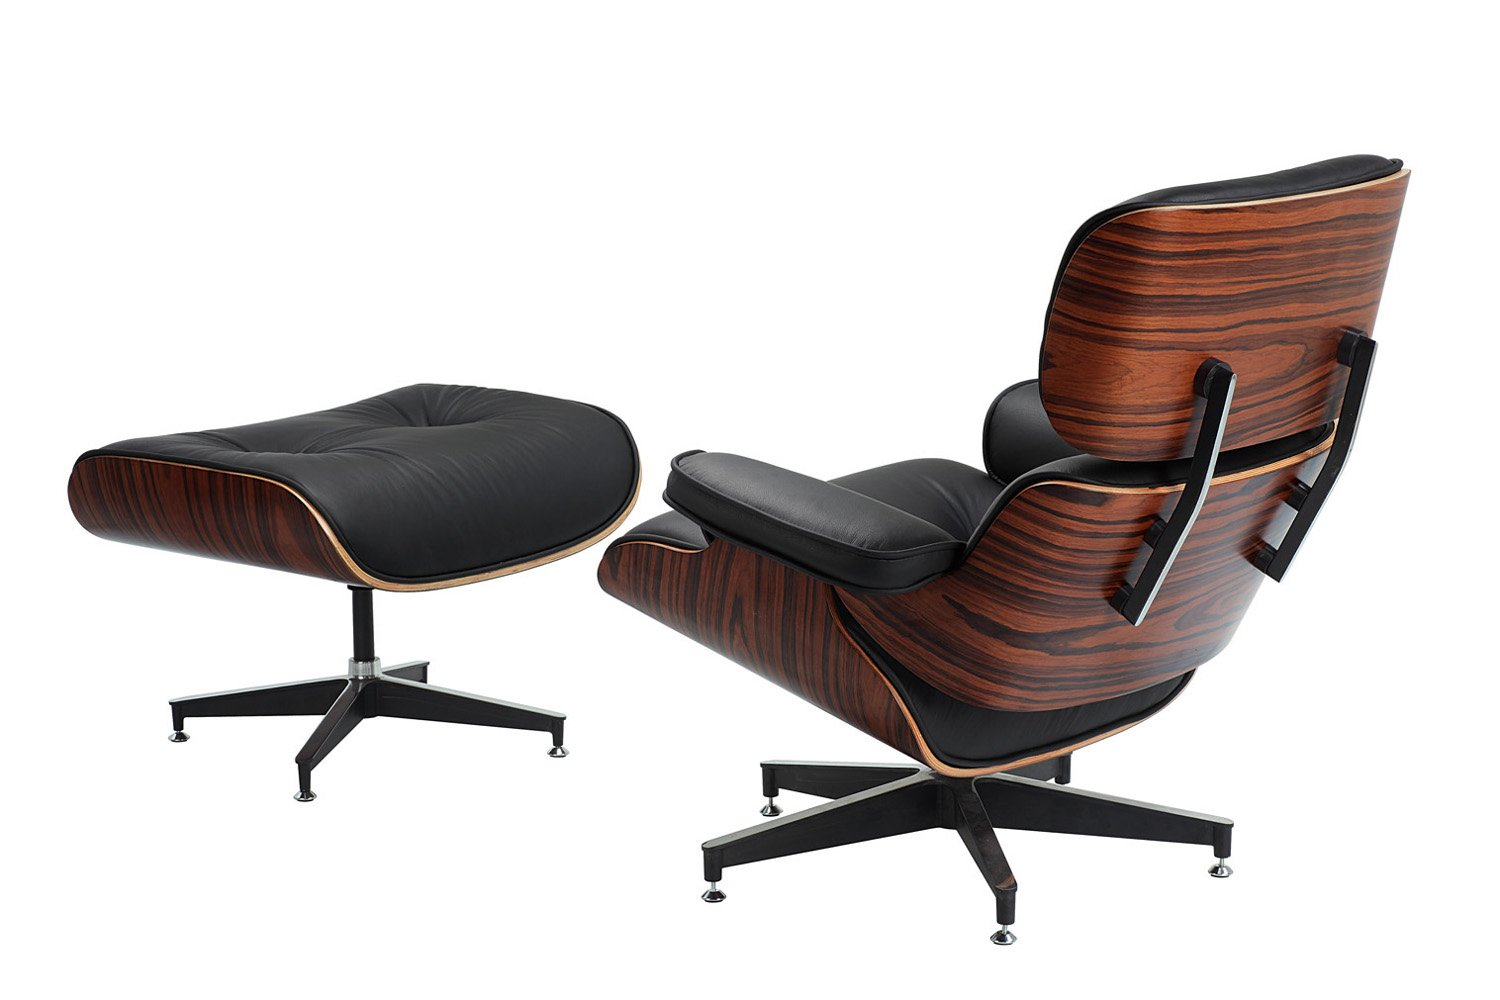 Eames Lounge Office Chair Eames Lounge Chair Good Design